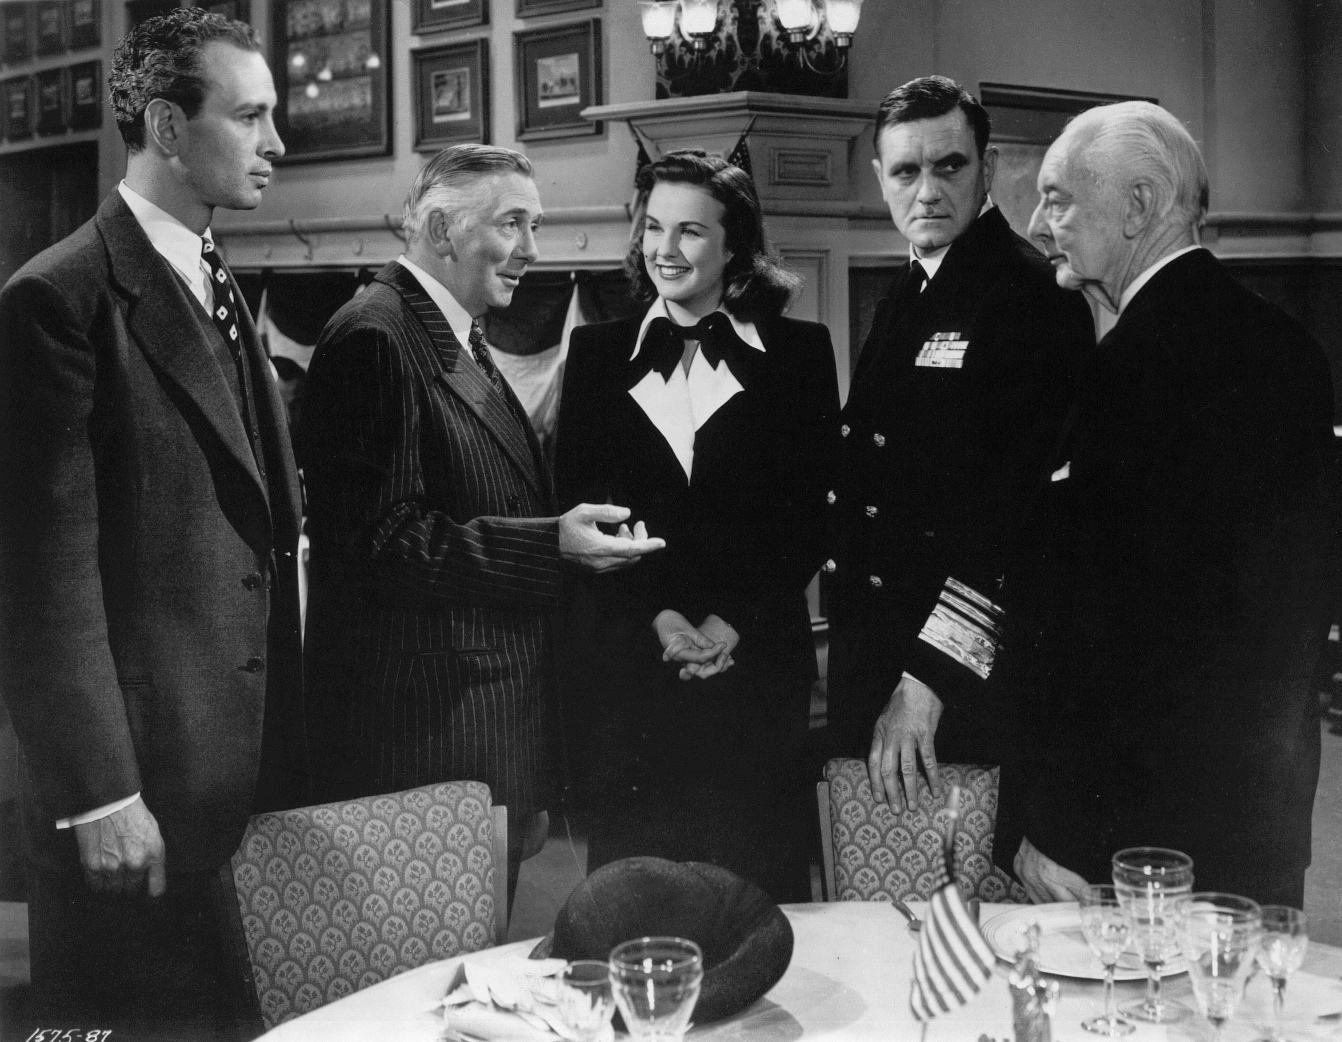 Deanna Durbin, Harry Davenport, Morris Ankrum, Ray Collins, and Jeffrey Lynn in For the Love of Mary (1948)